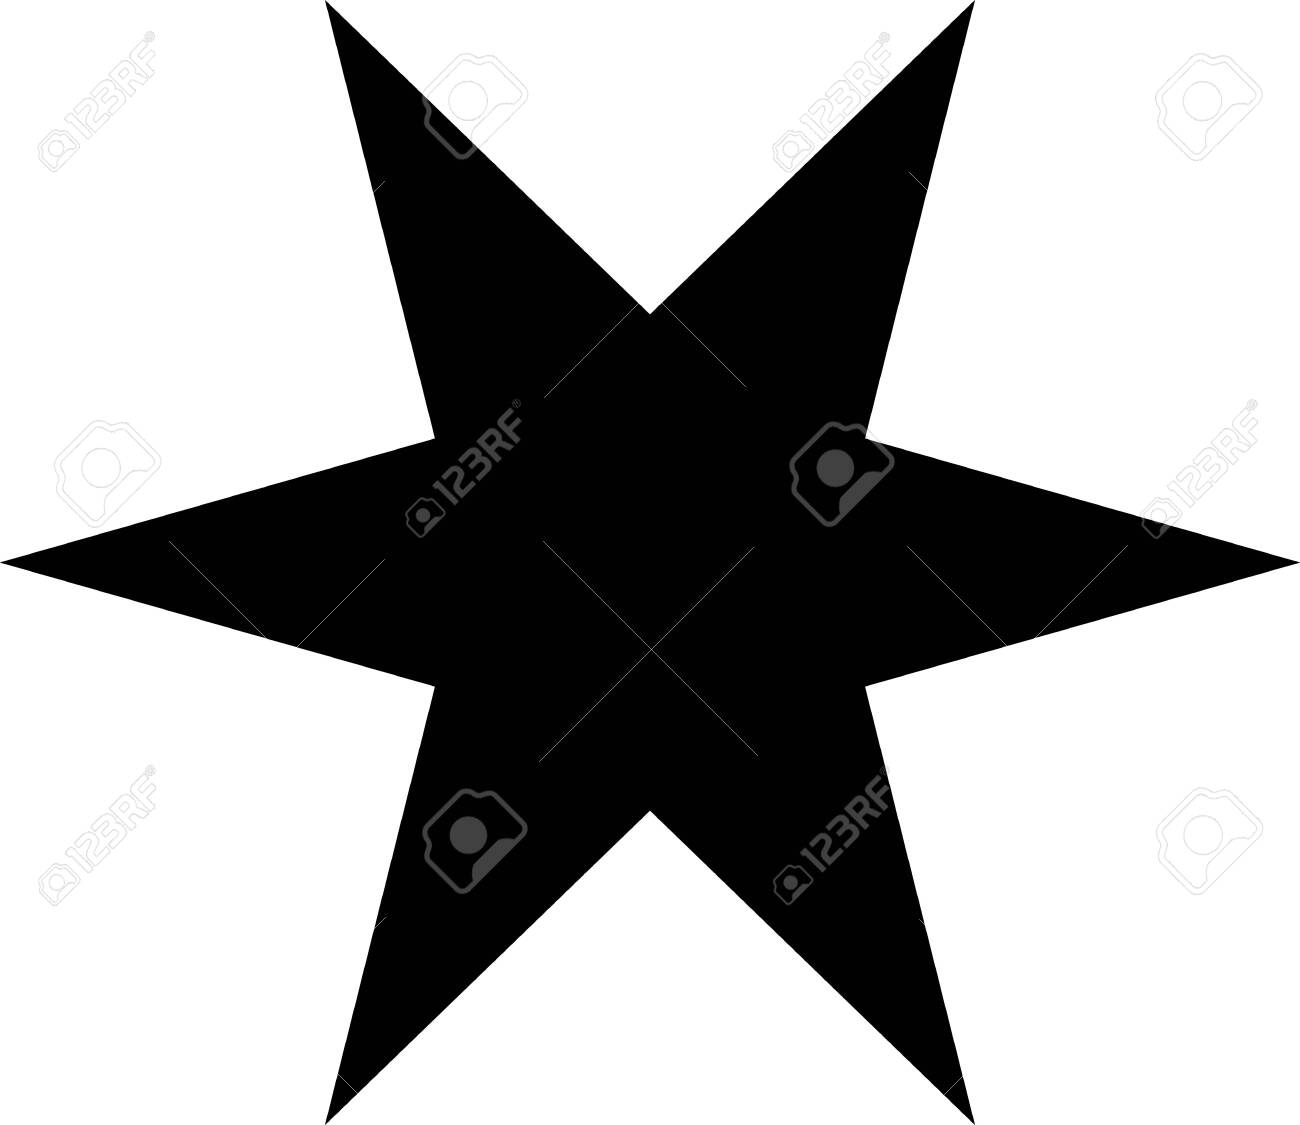 Black And White Stars Clipart   Free Images at Clker.com - vector clip art  online, royalty free & public domain